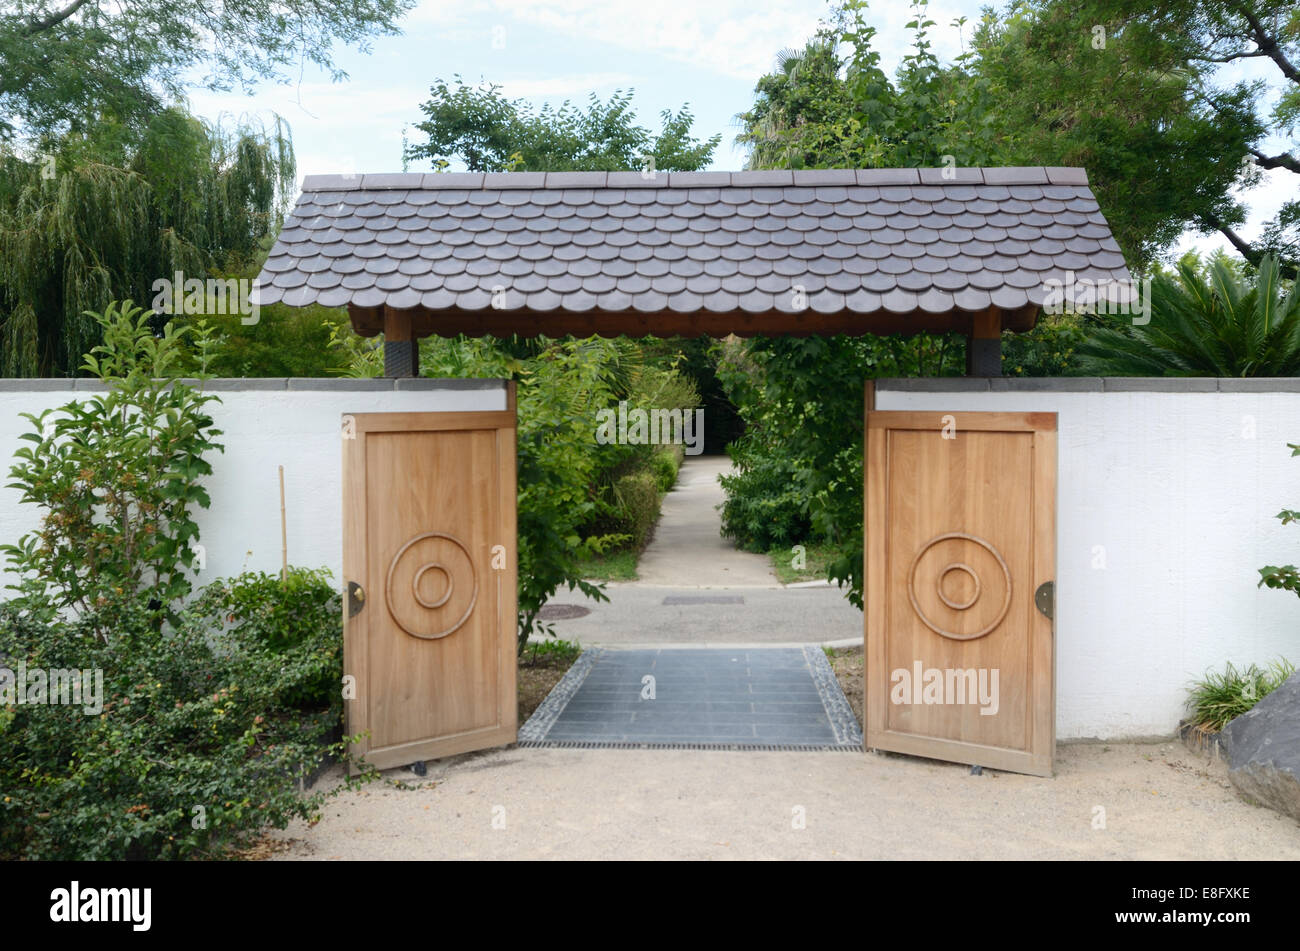 Japanese Doors, Gate or Entrance to the Japanese Garden